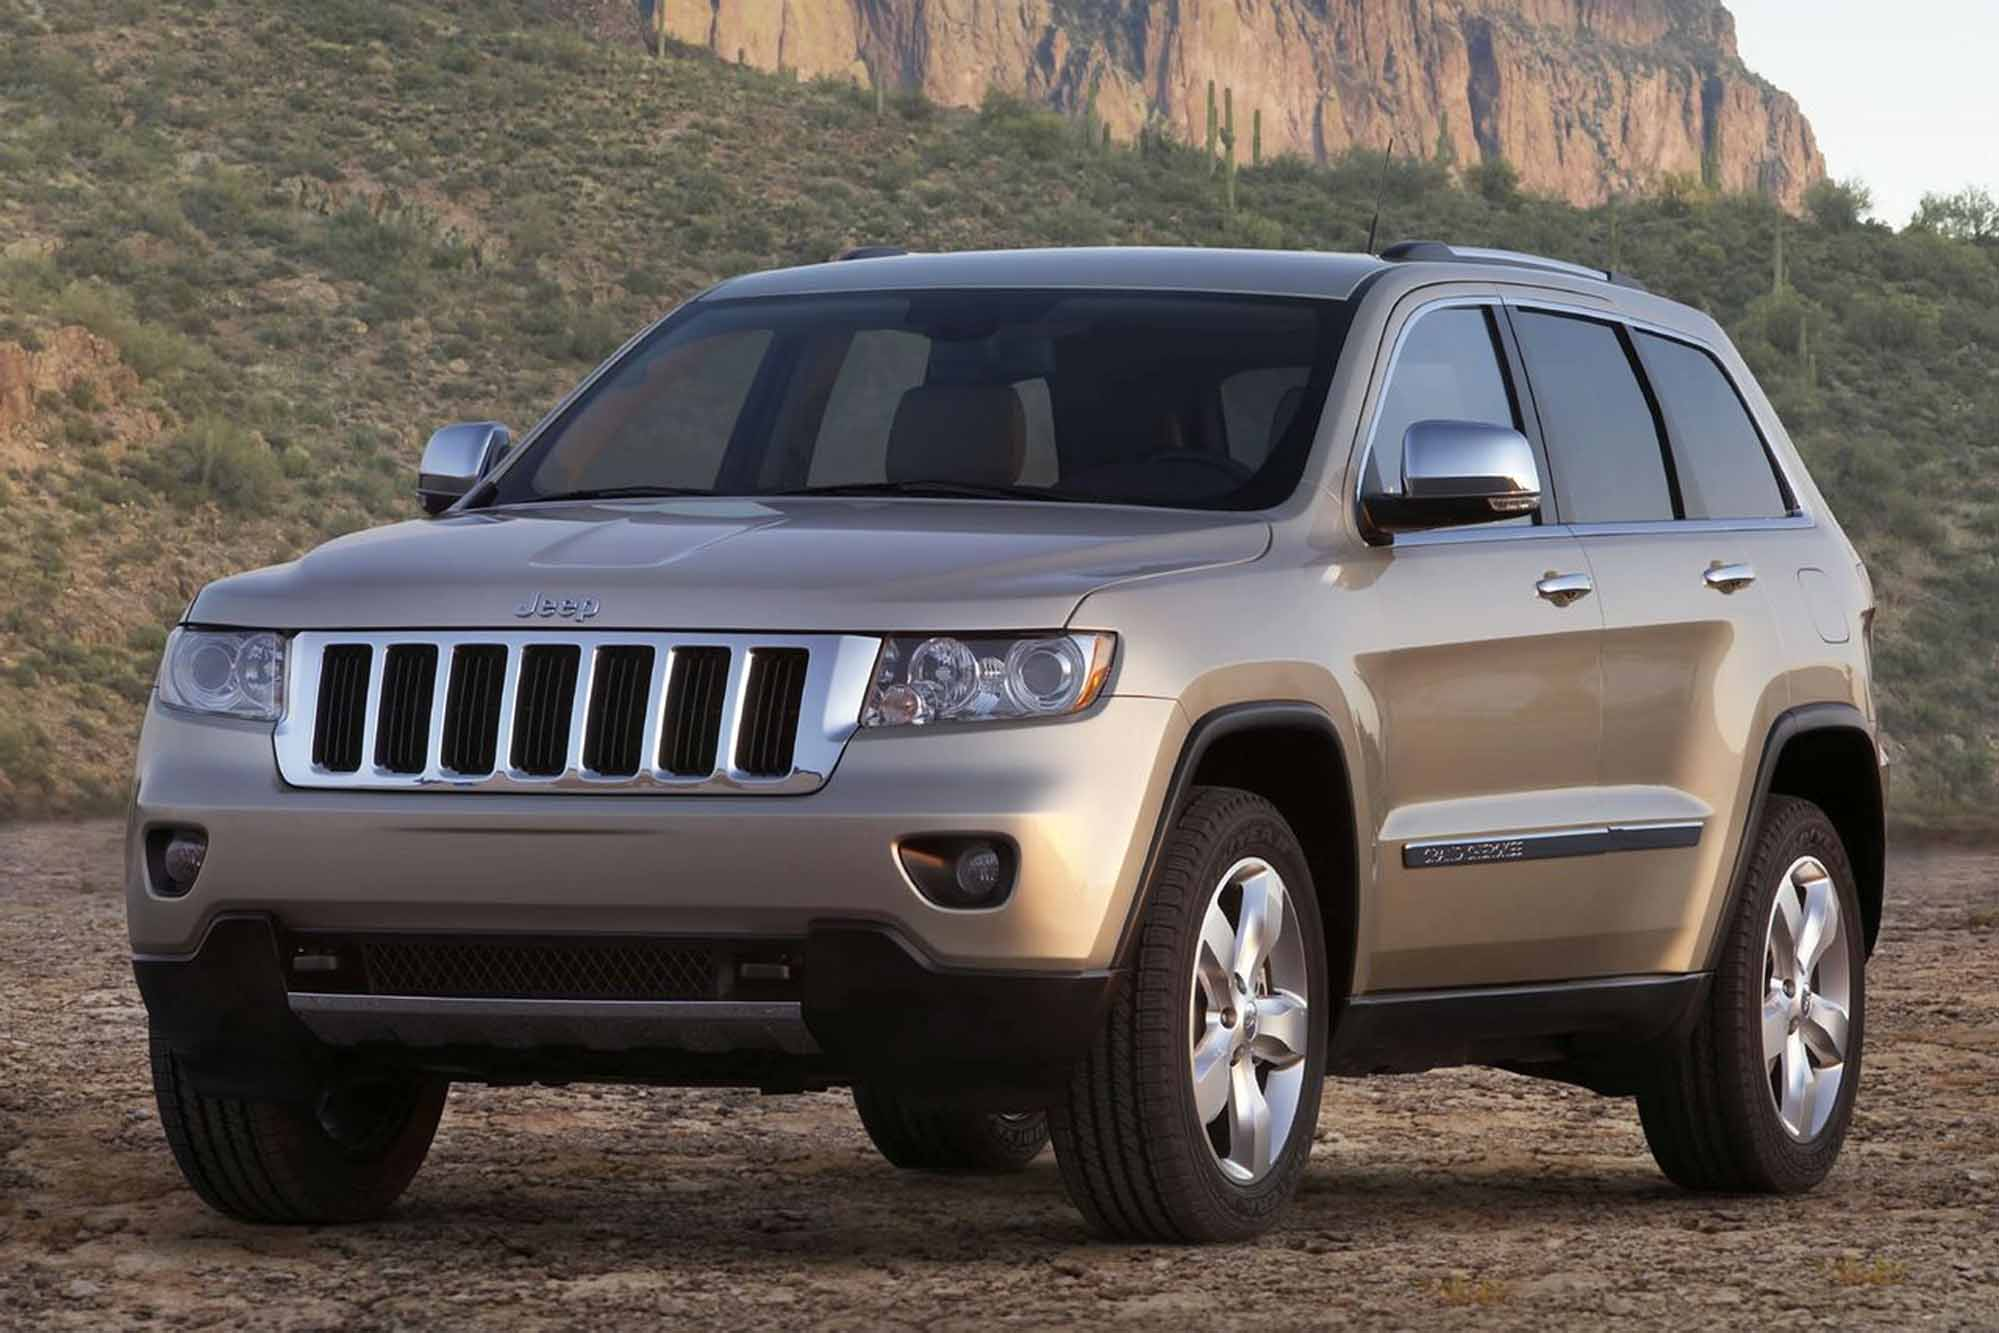 2011 Jeep Grand cherokee wl – pictures information and specs